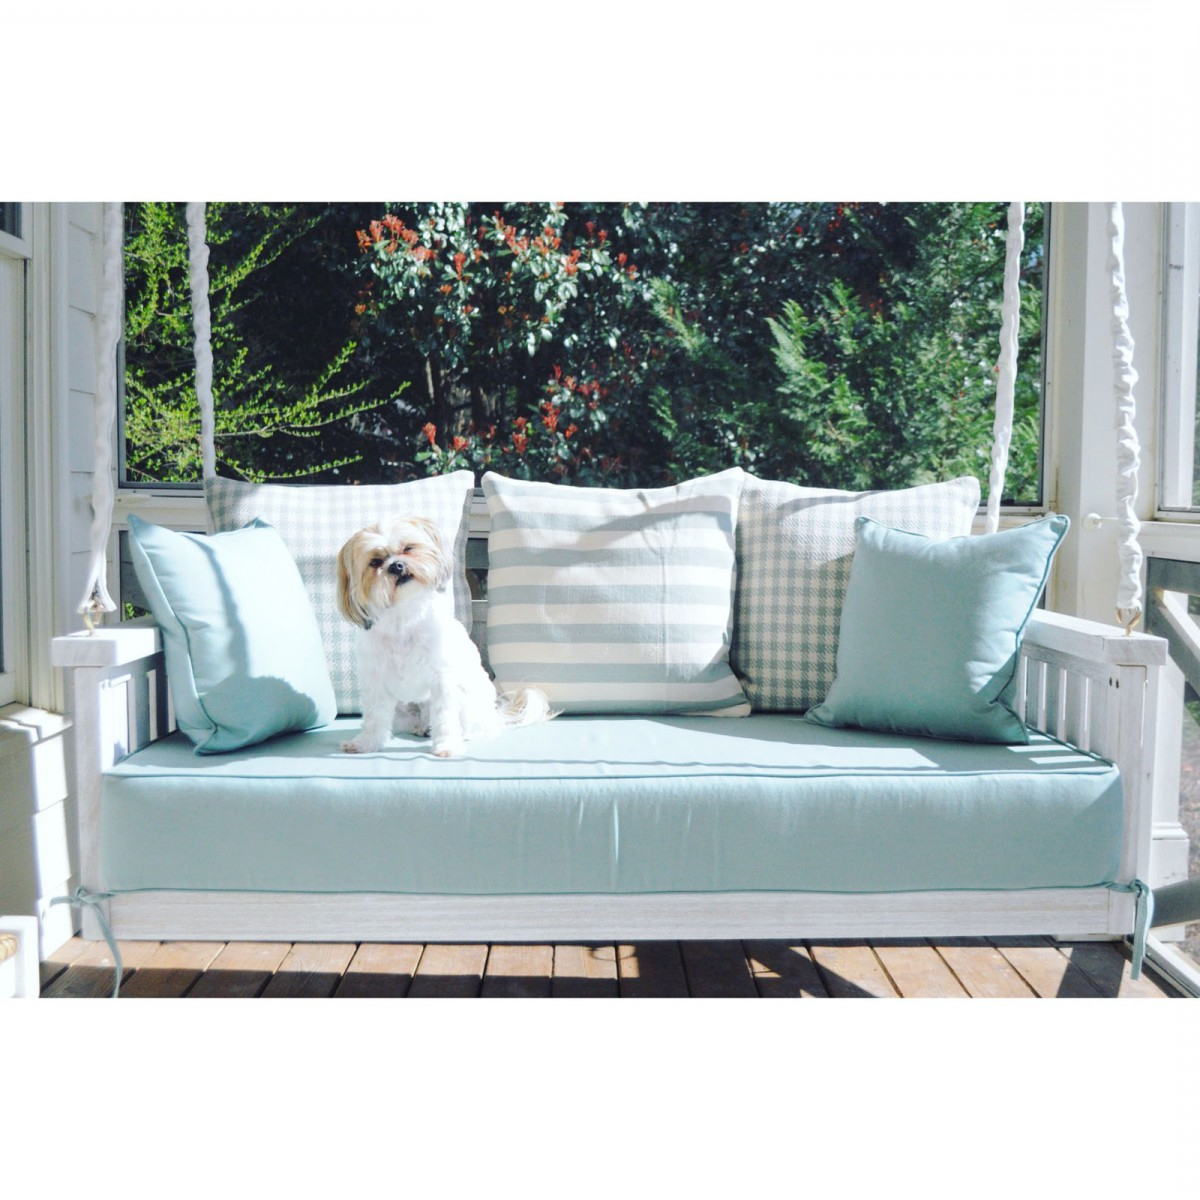 Well Liked Custom Outdoor Glider / Porch Swing Cushions – Outdoor With Glider Benches With Cushions (Gallery 26 of 30)